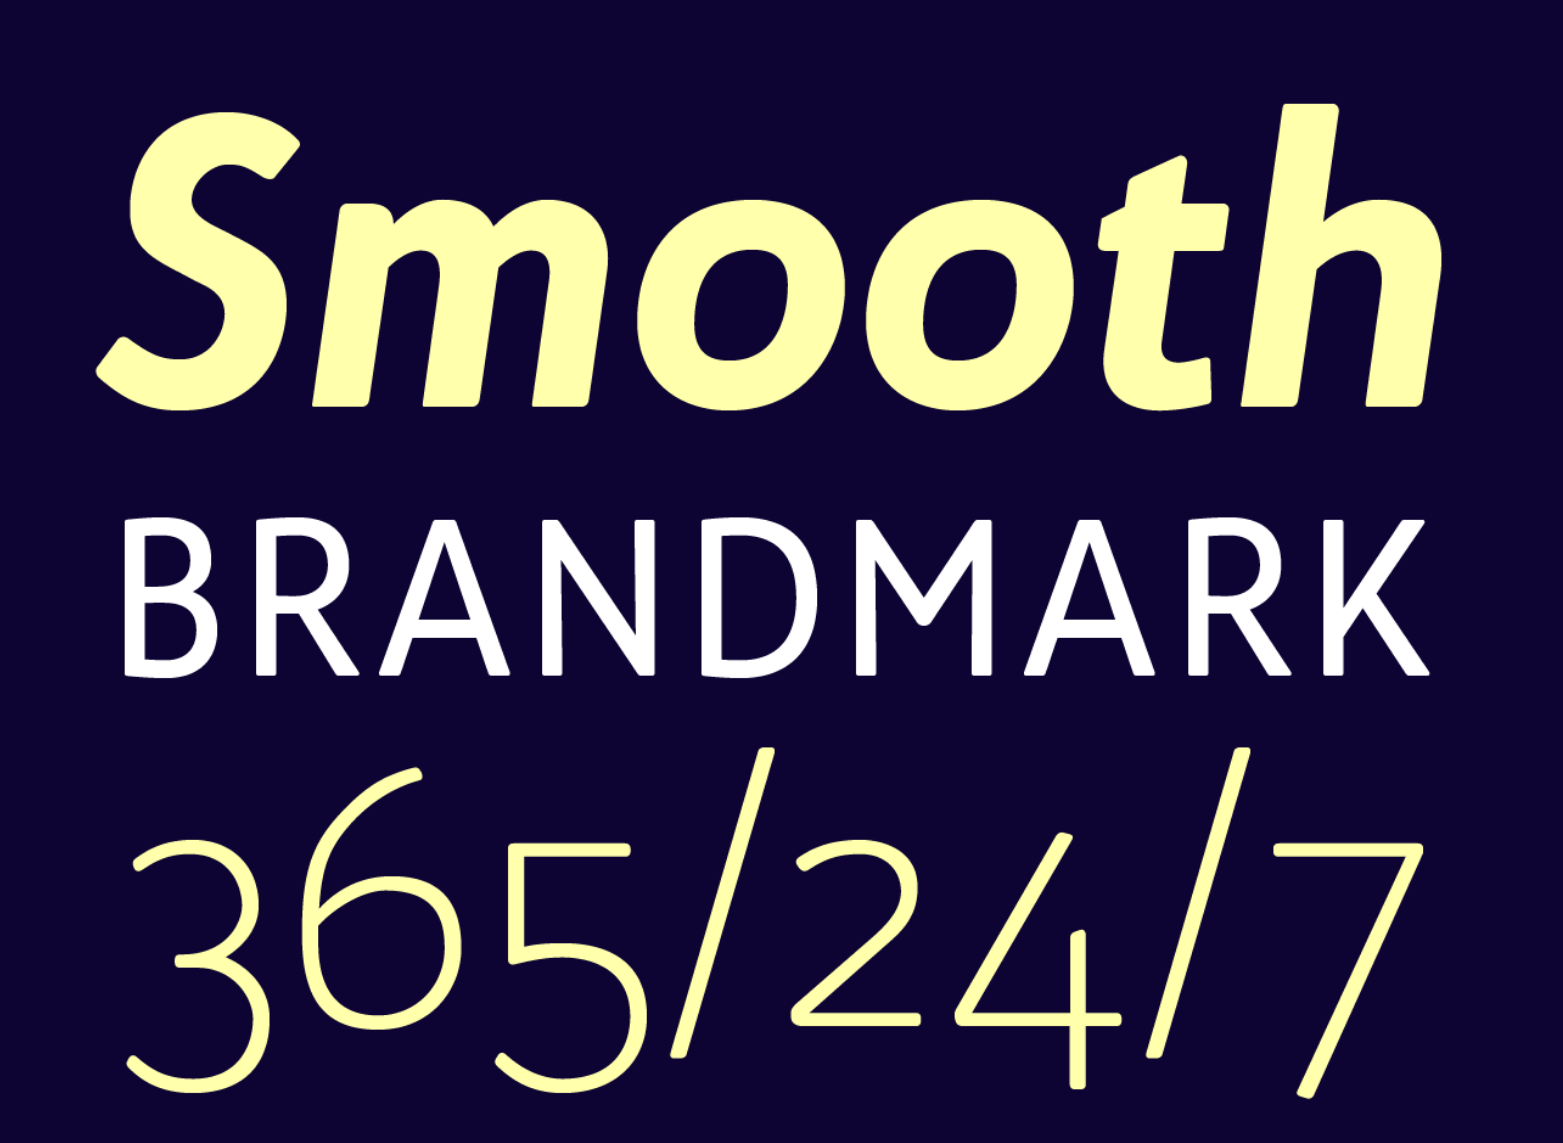 Bw Quinta Pro is a contemporary humanist sans that is approachable but well-grounded, getting any content delivered with efficiency while looking smart and professional. With round edges and handwritten inspired details Quinta pro feels like a familiar friend.